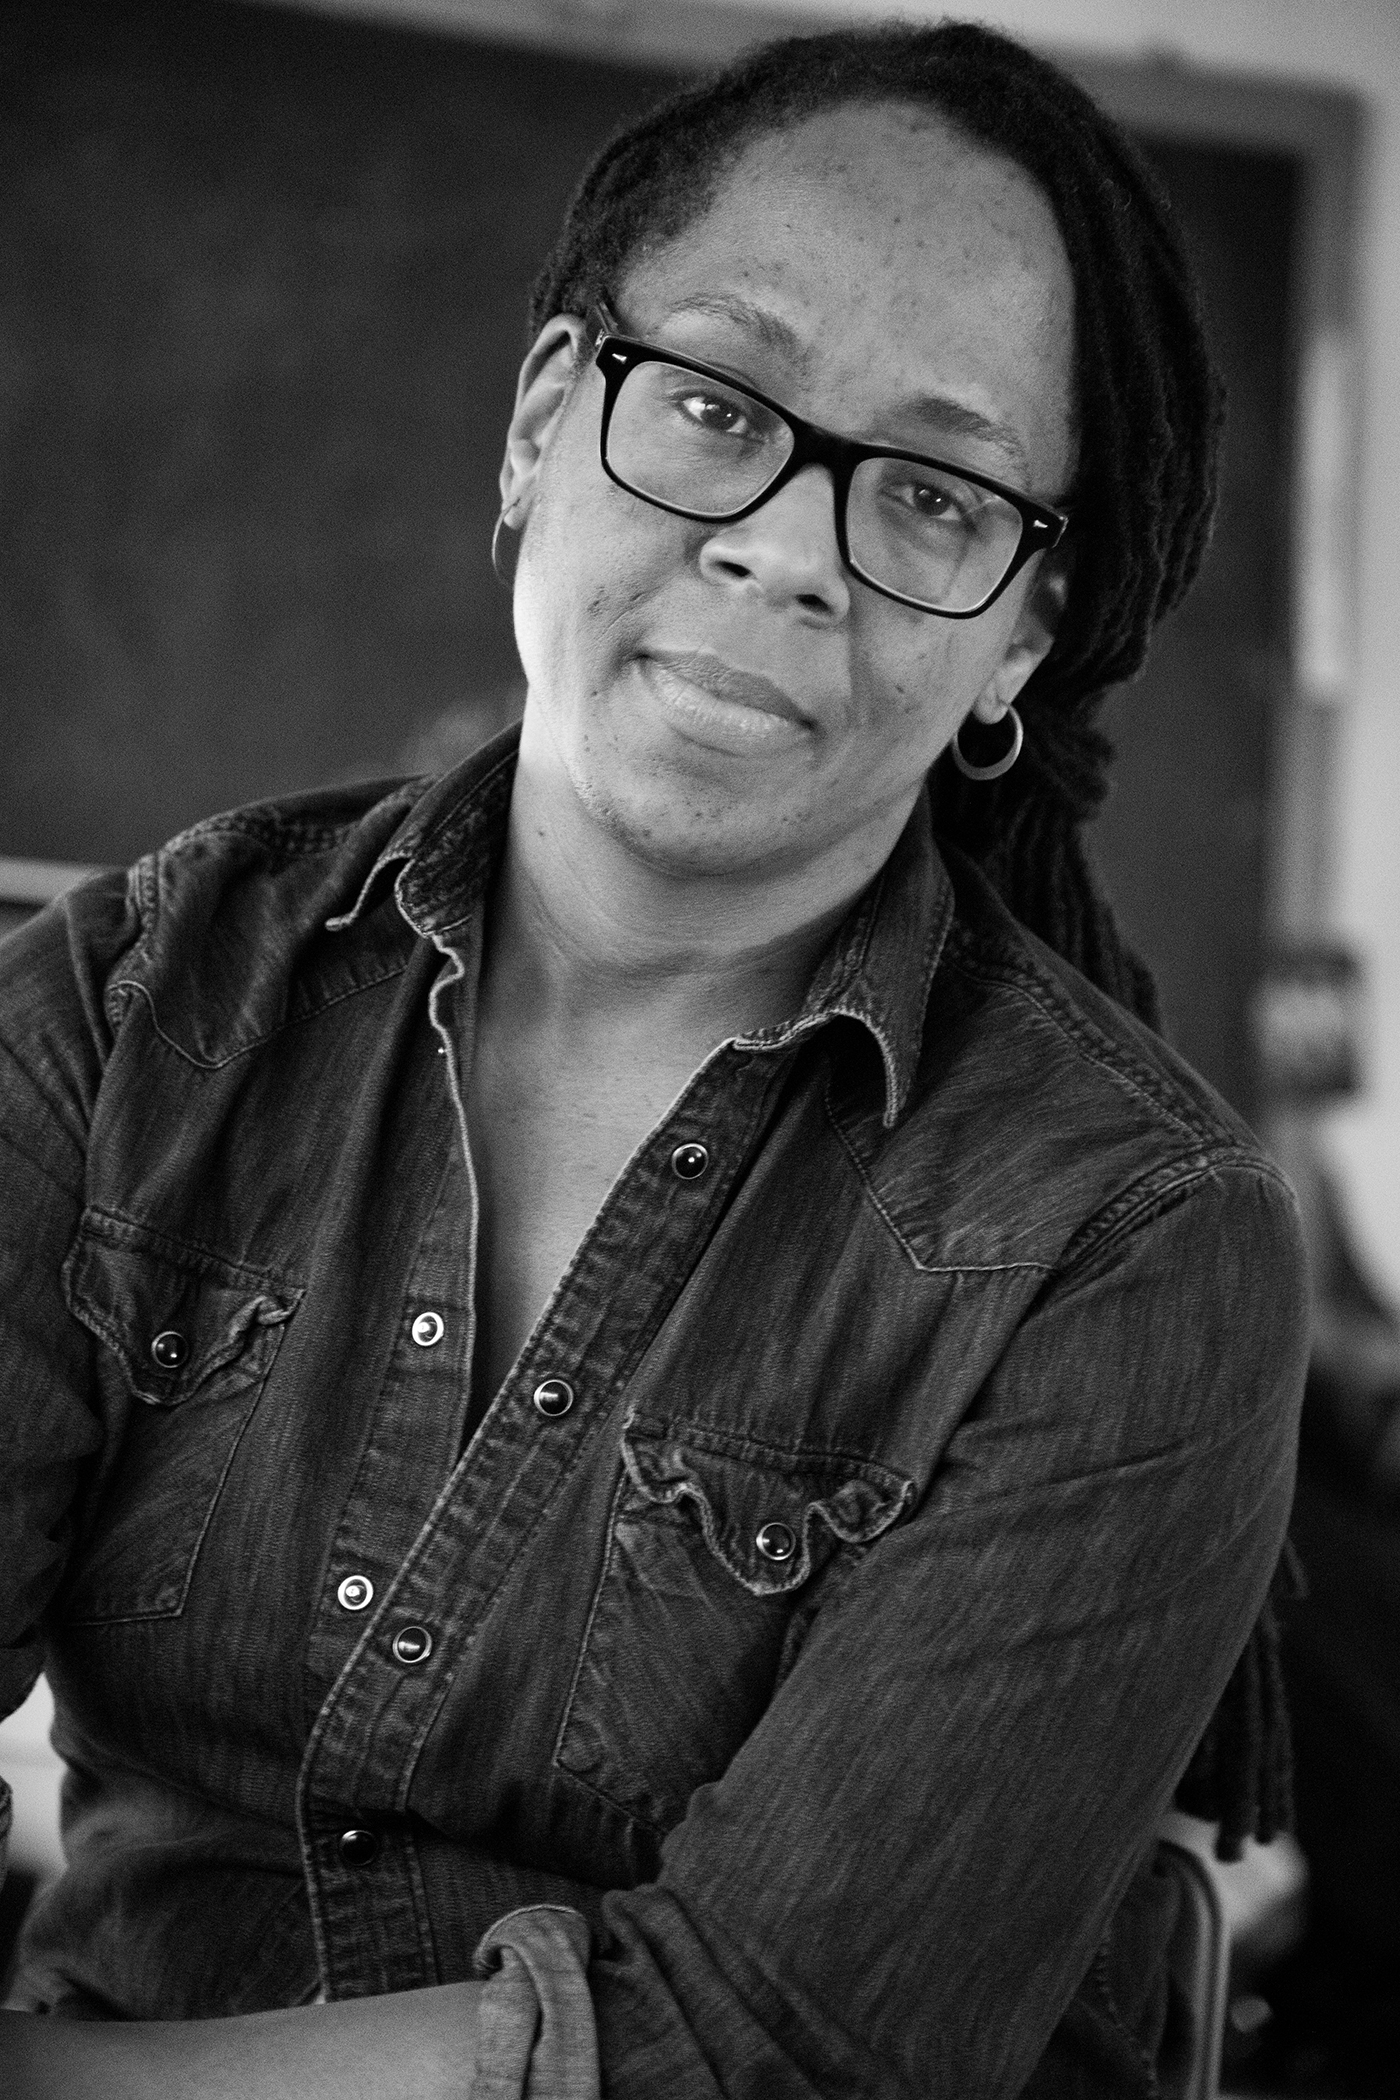 Black and white photo of Deanna Bowen, a Black woman with dark-rimmed glasses, small hoop earrings and long black hair pulled back in braids wearing a button-down denim shirt